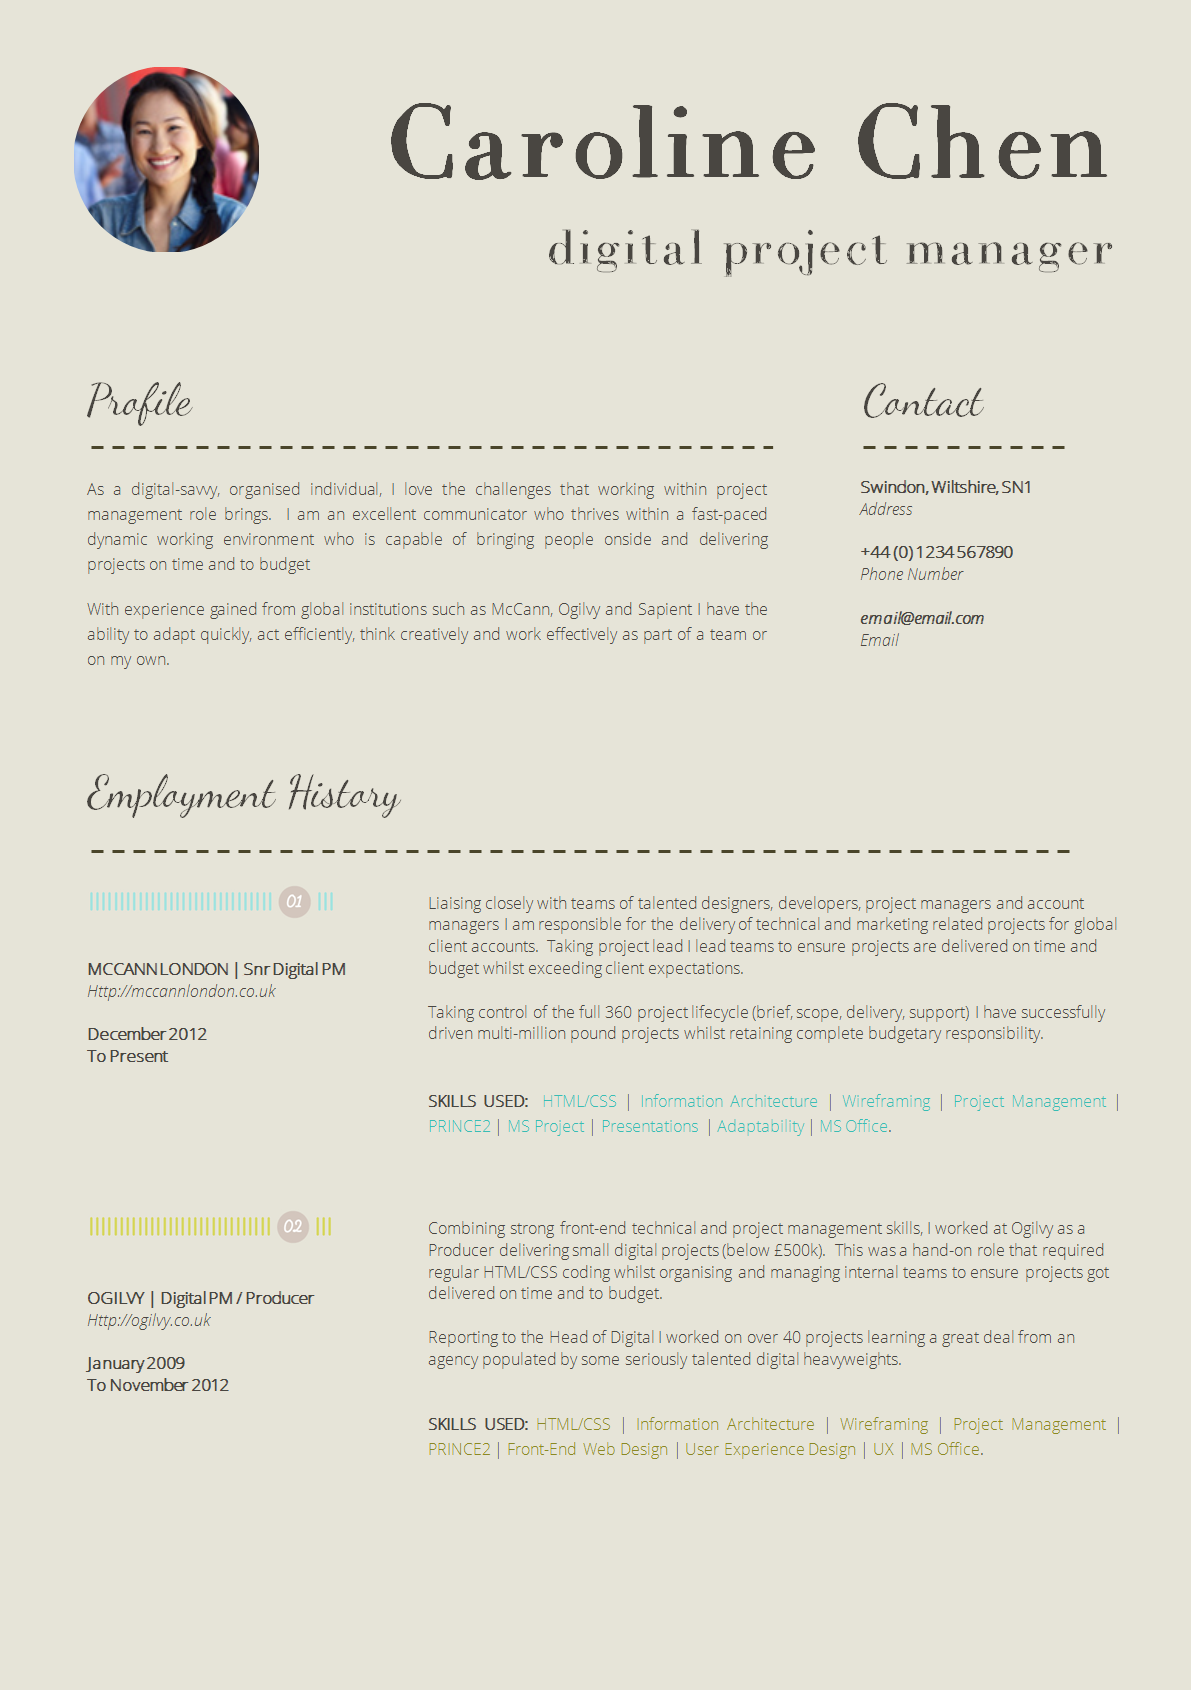 professional curriculum vitae sample  13 Slick and Highly Professional CV Templates | Guru